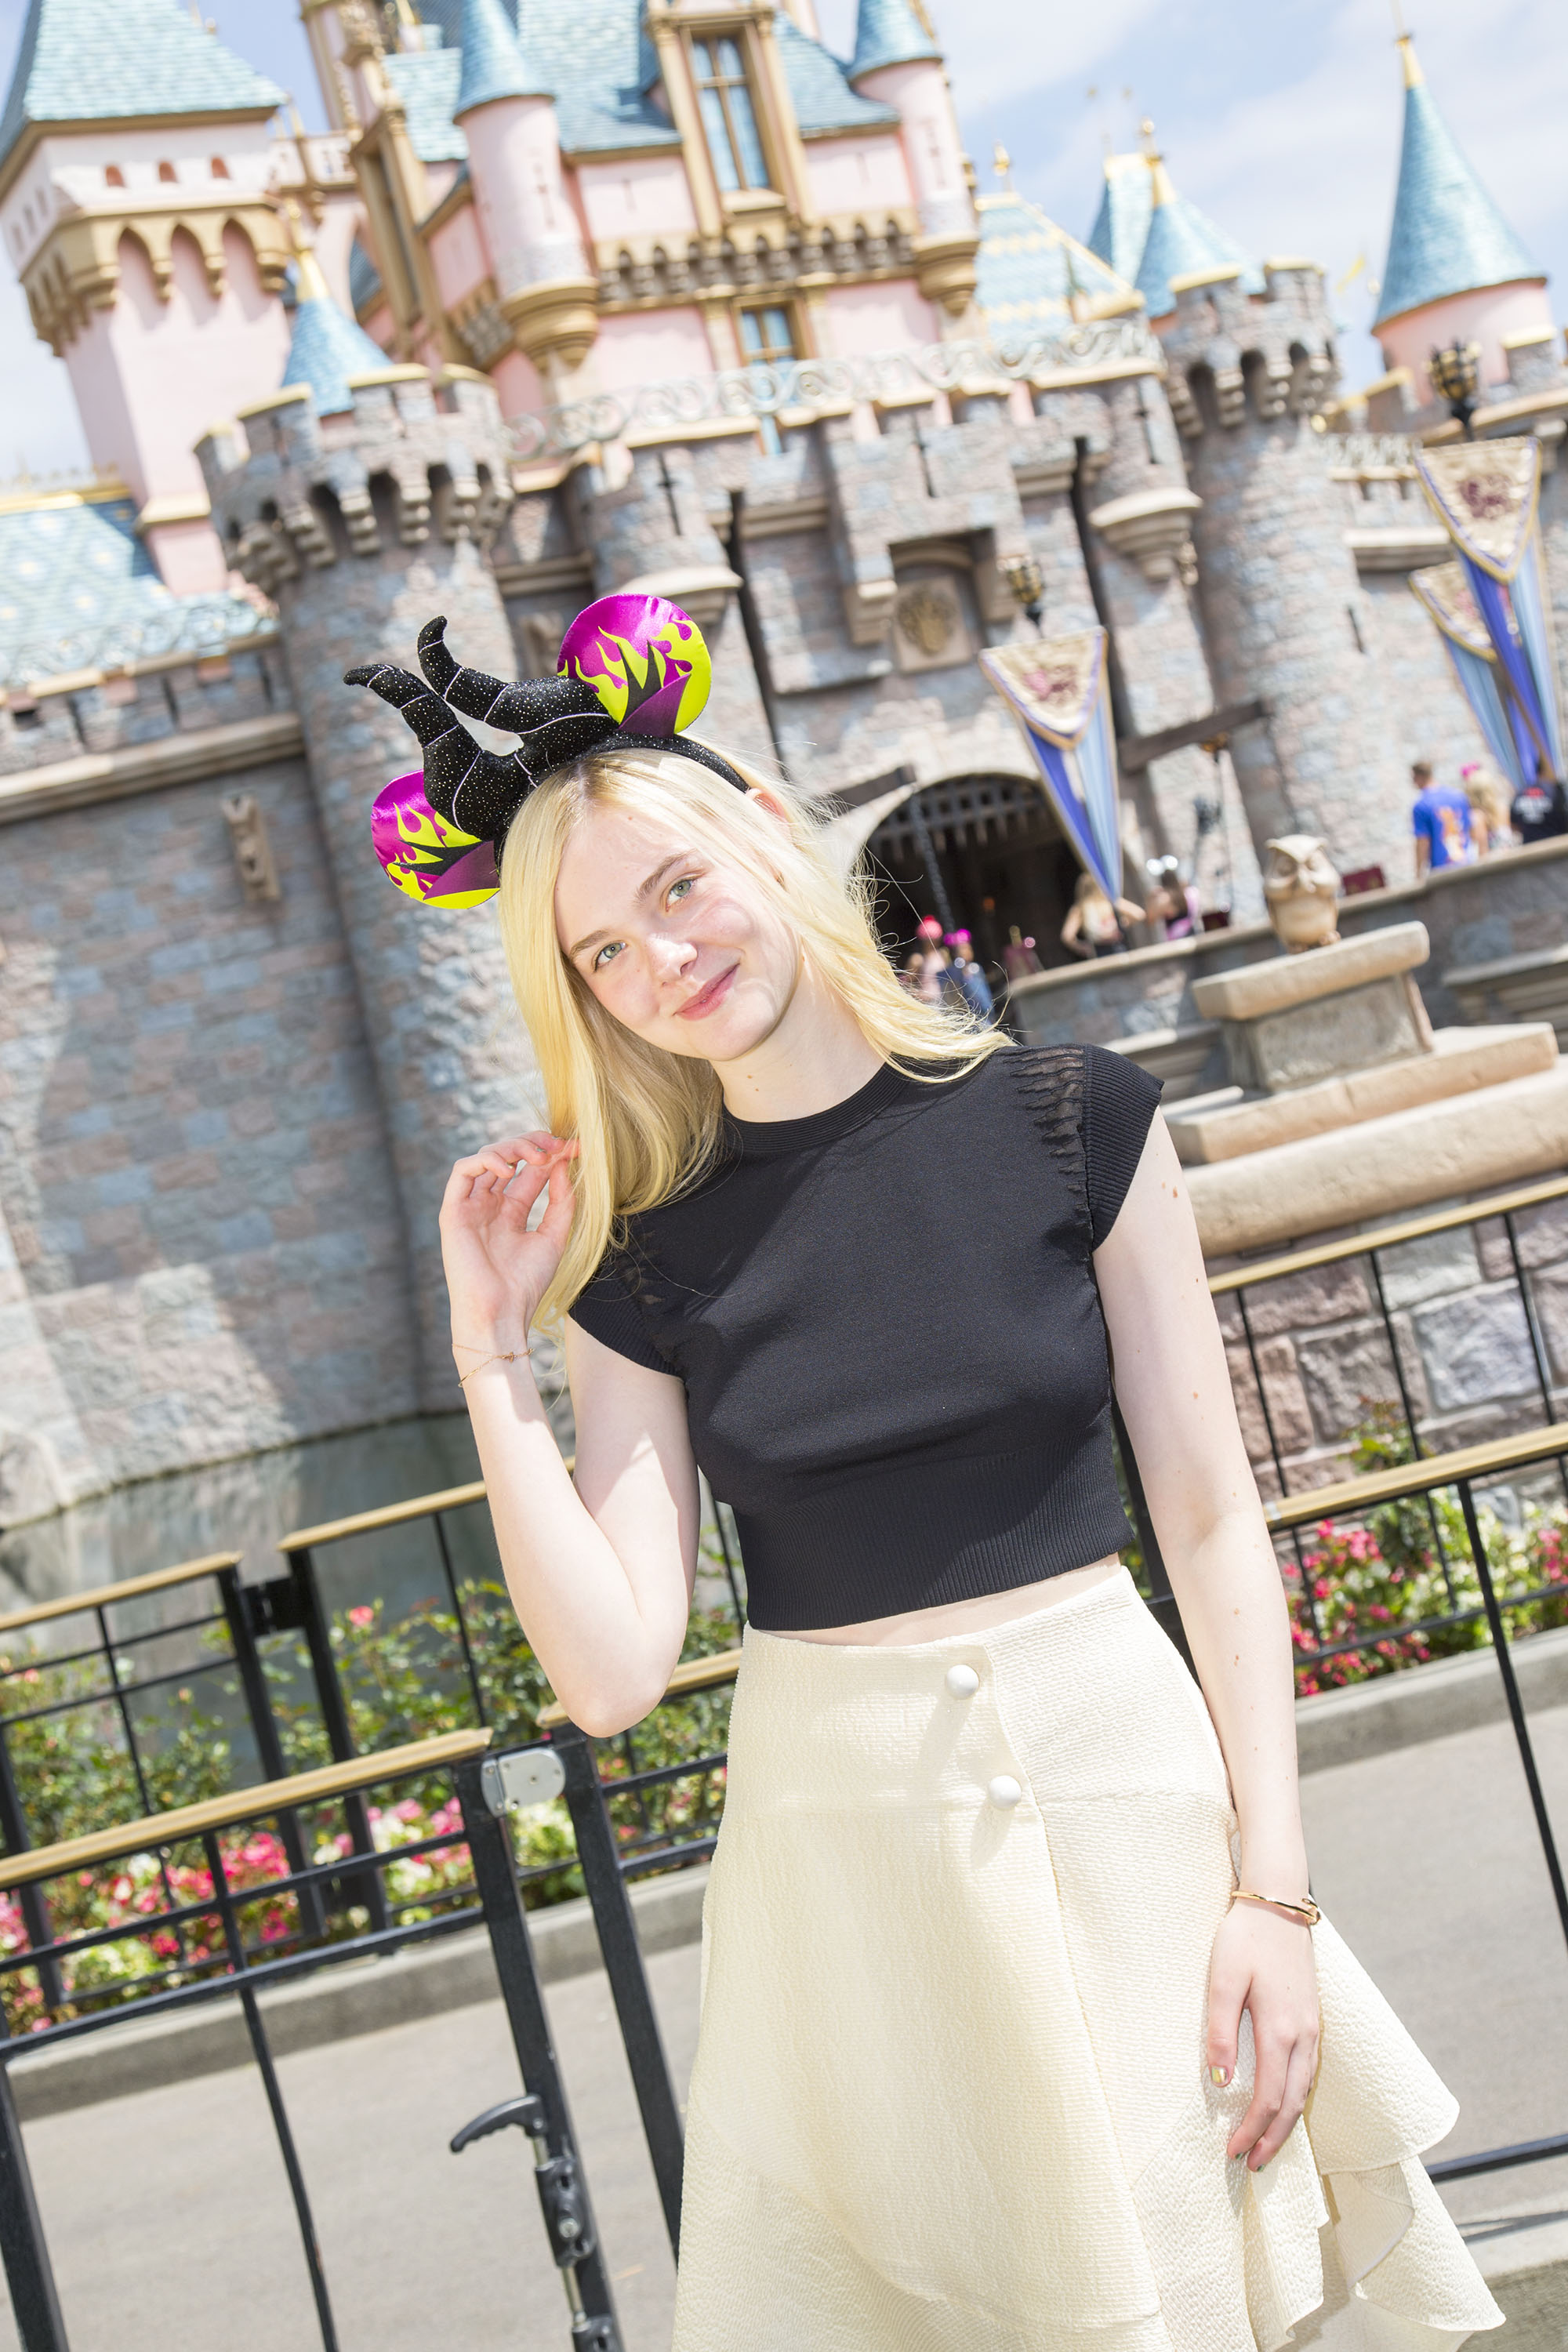 Maleficent-Elle Fanning-PROMO PHOTO-17ABRIL2014-03